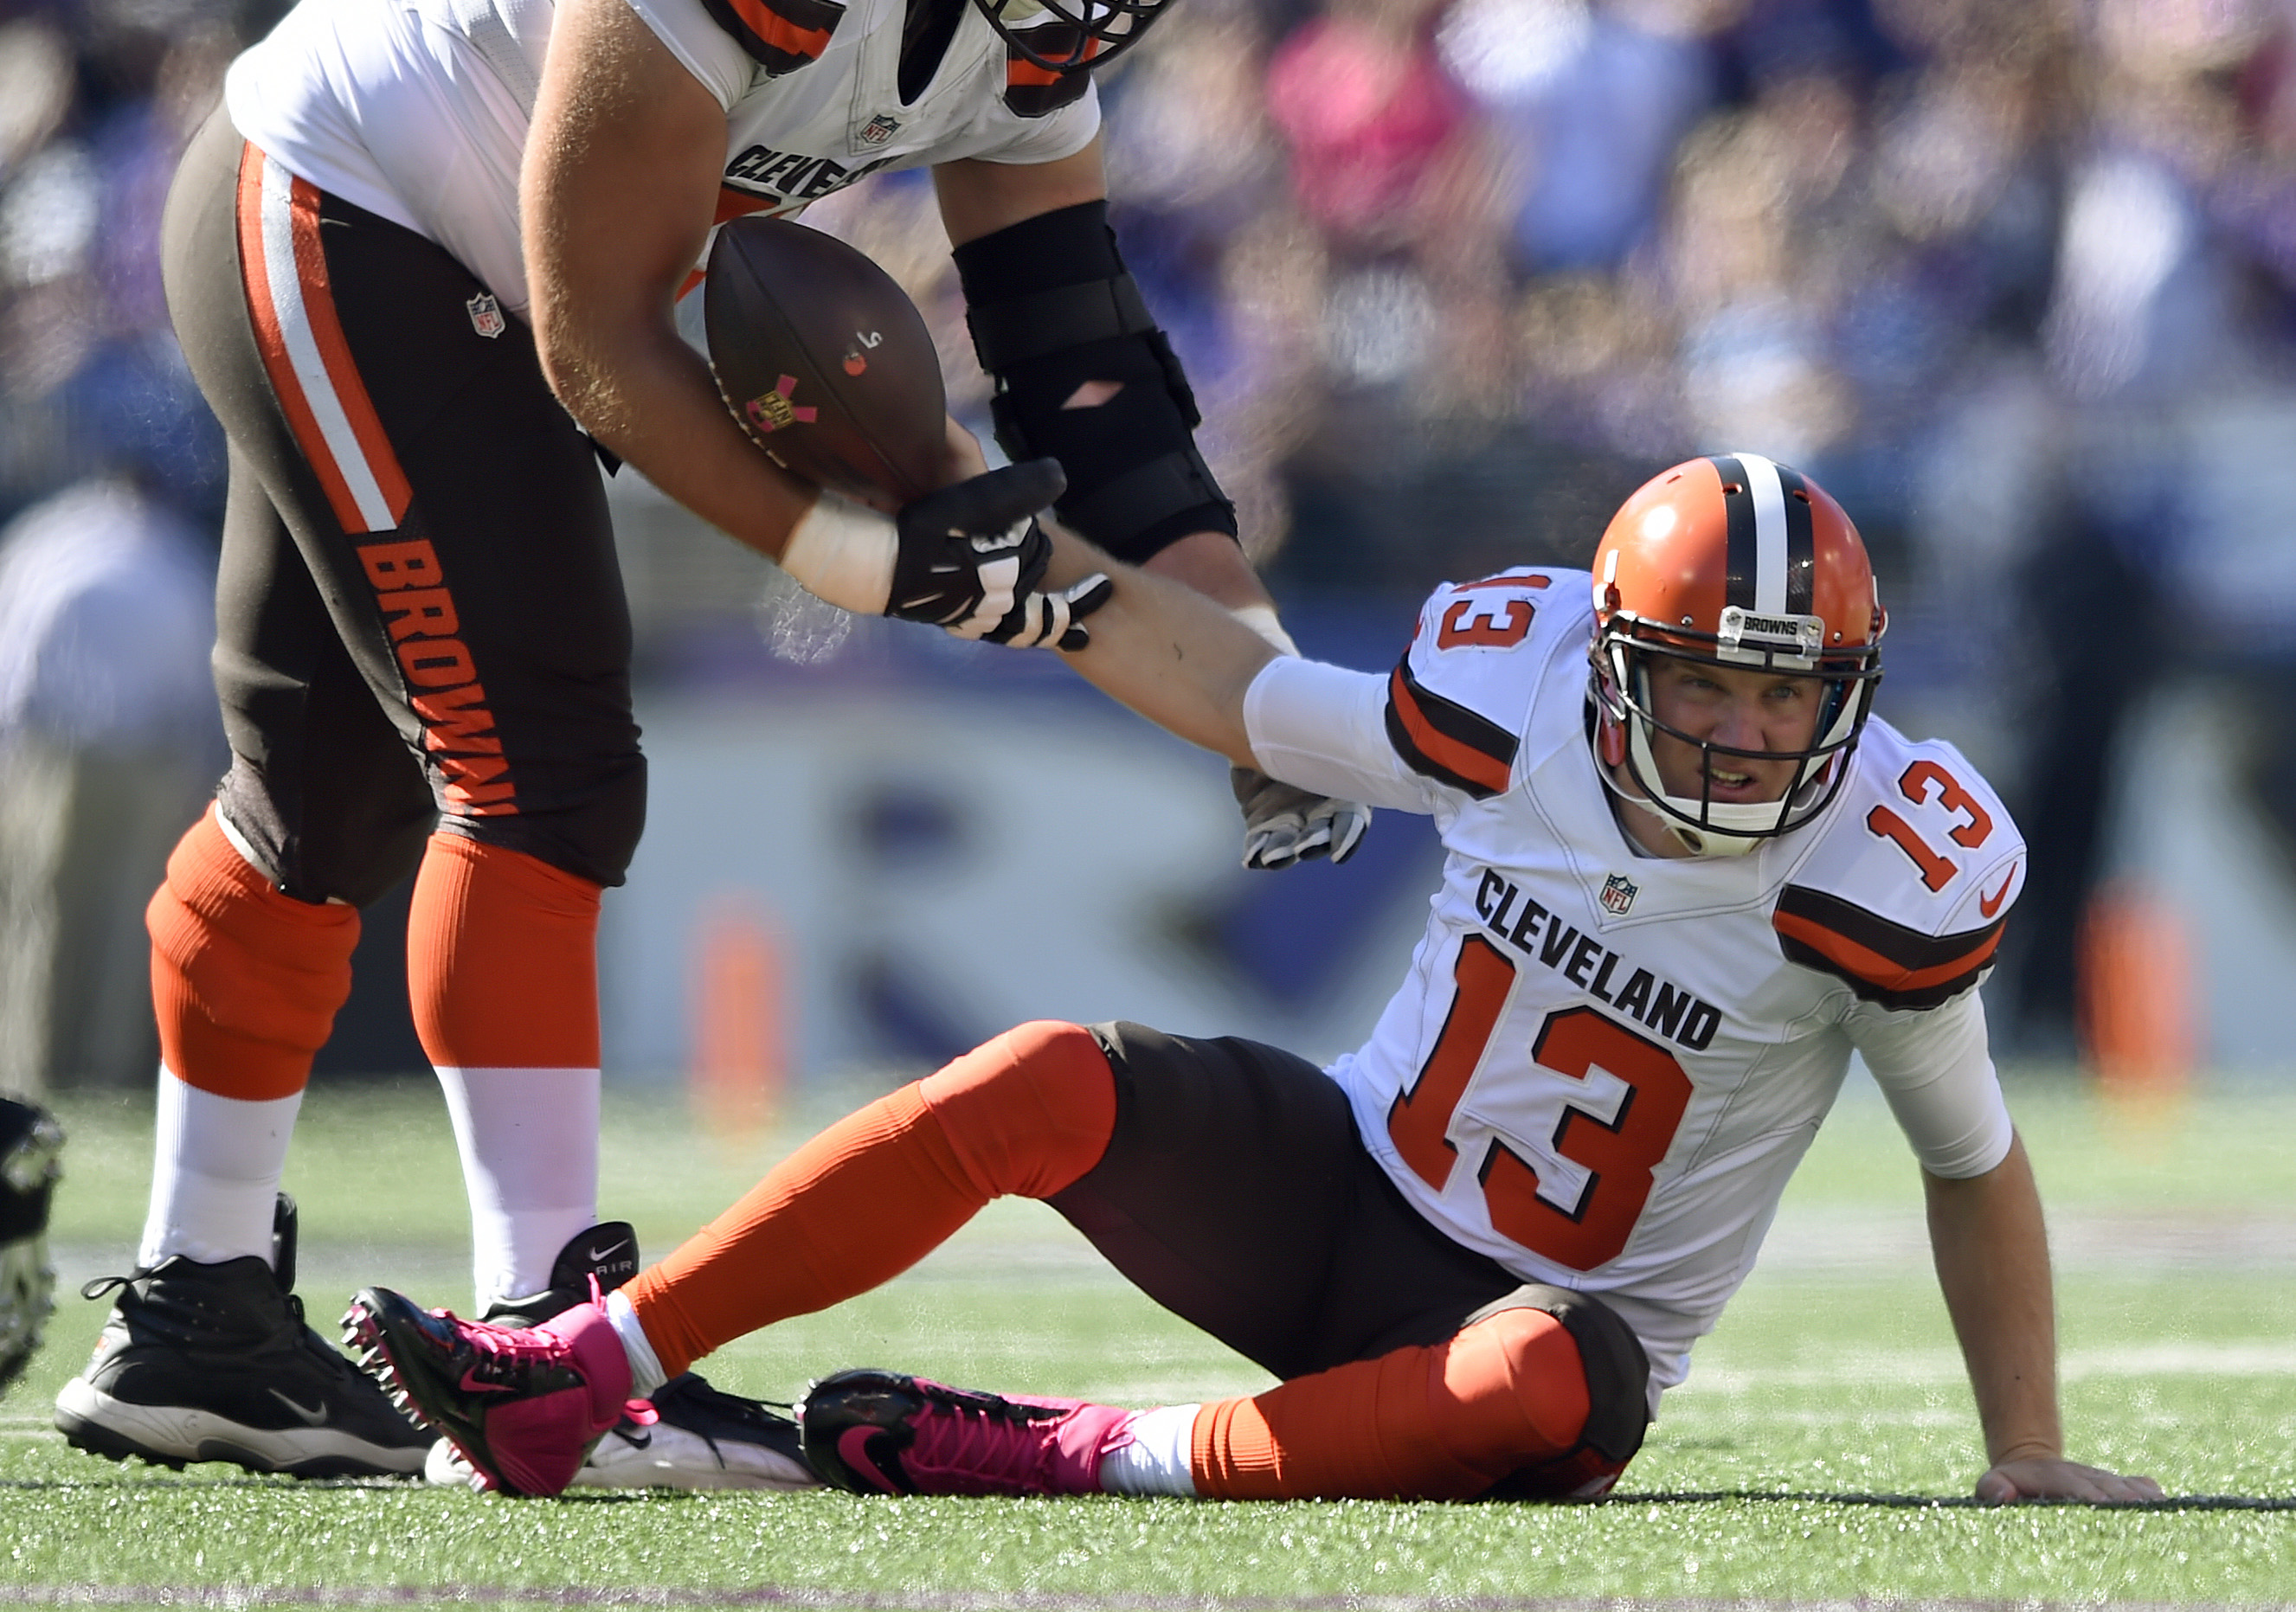 Cleveland Browns quarterback Josh McCown (13) is assisted to his feet after being sacked in the first half of an NFL football game against the Baltimore Ravens, Sunday, Oct. 11, 2015, in Baltimore. (AP Photo/Gail Burton)